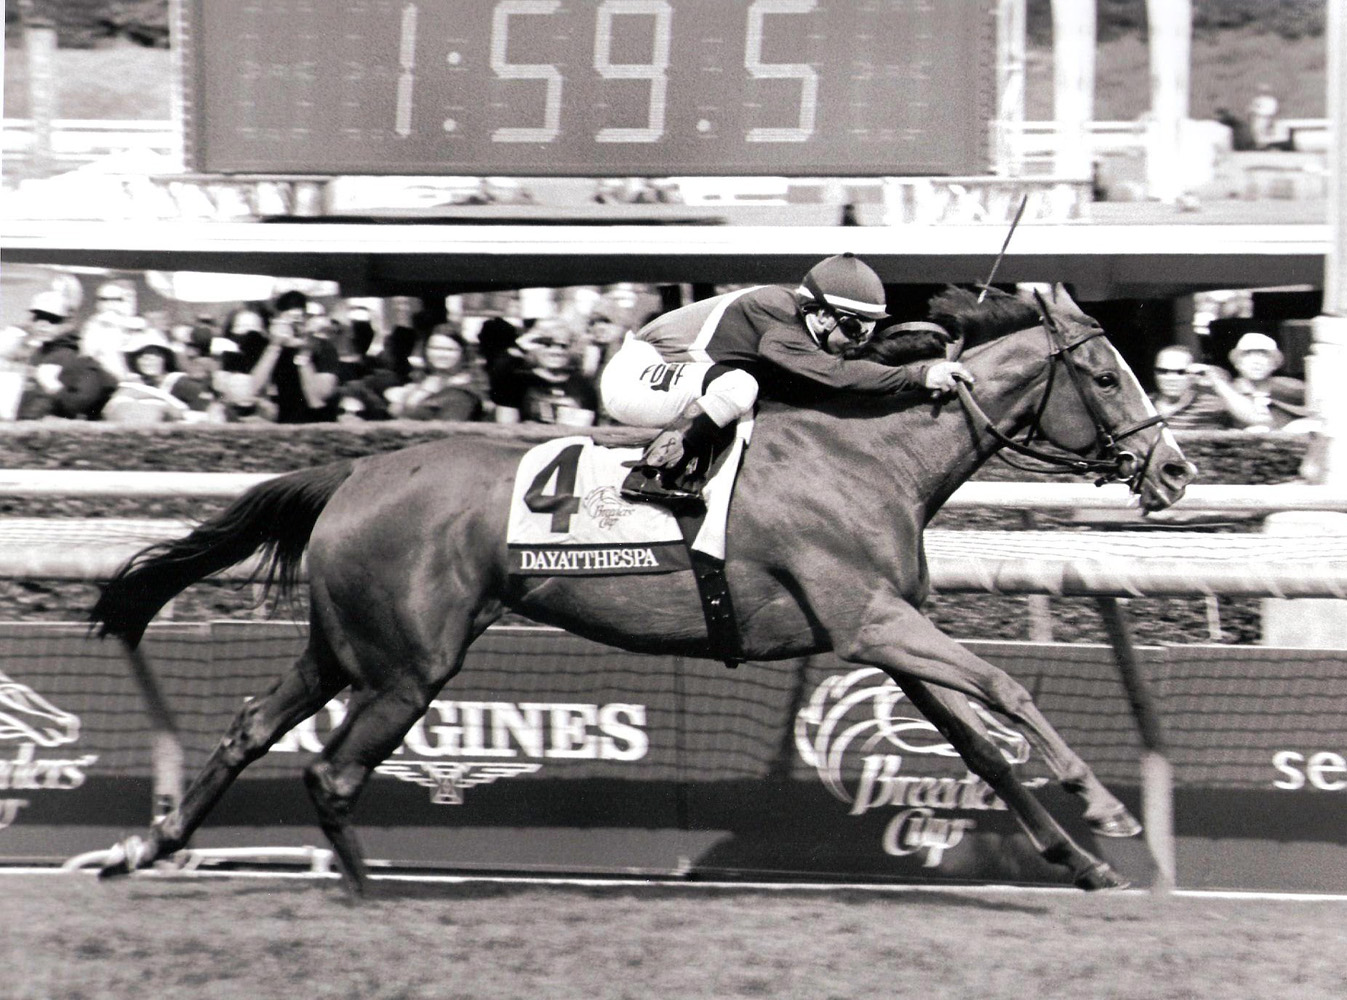 Javier Castellano and Dayatthespa winning the 2014 Breeders' Cup Filly & Mare Turf at Santa Anita (Bill Mochon/Museum Collection)